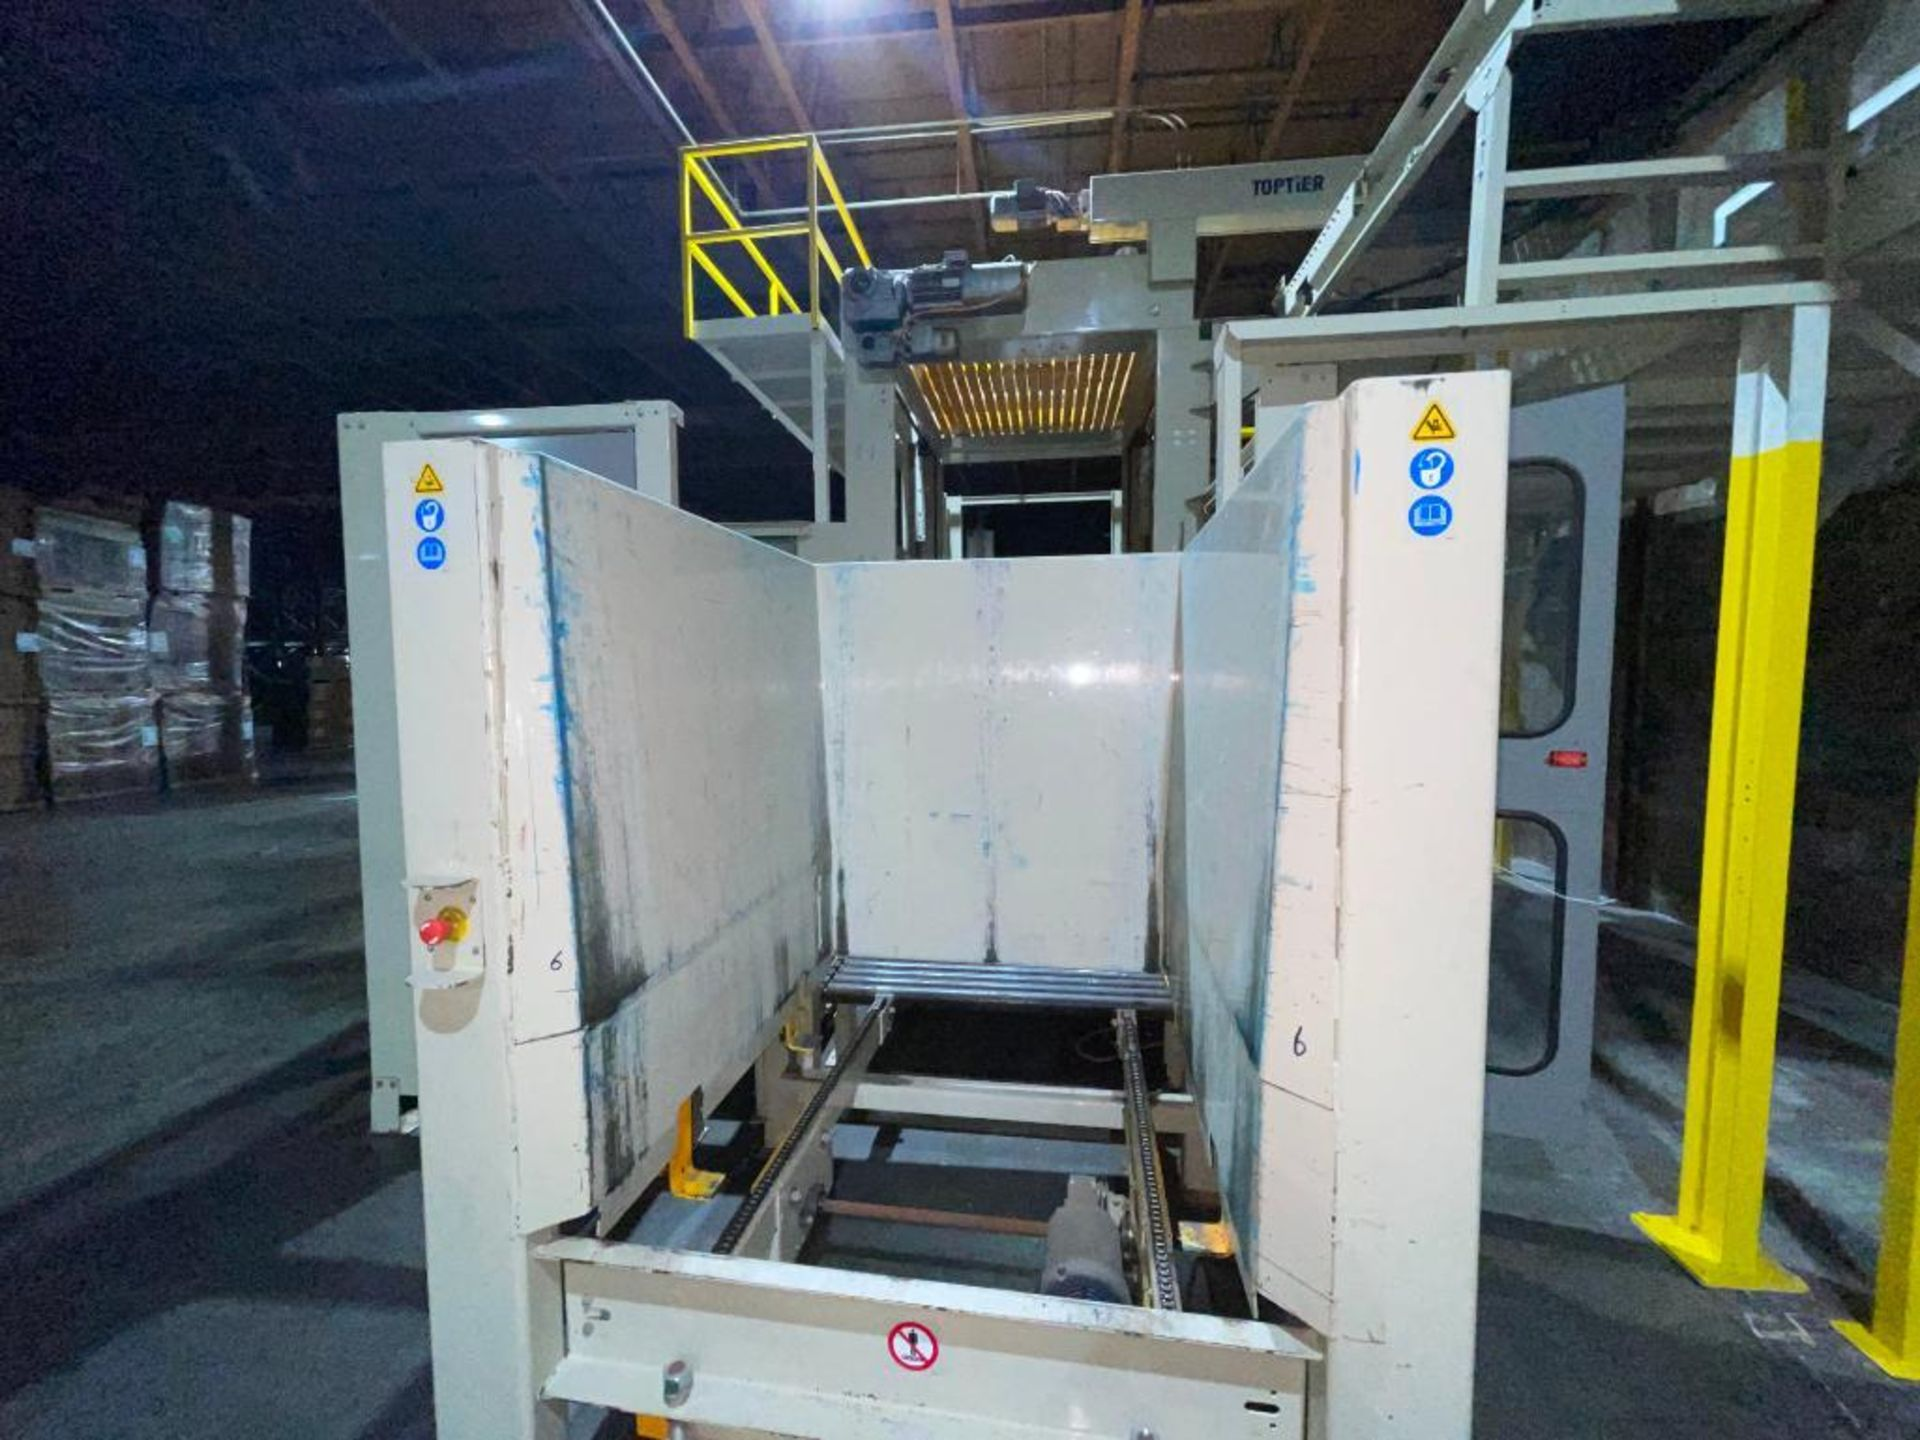 2013 TopTier downstacker, model DS with integrated TopTier pallet wrapper - Image 48 of 66